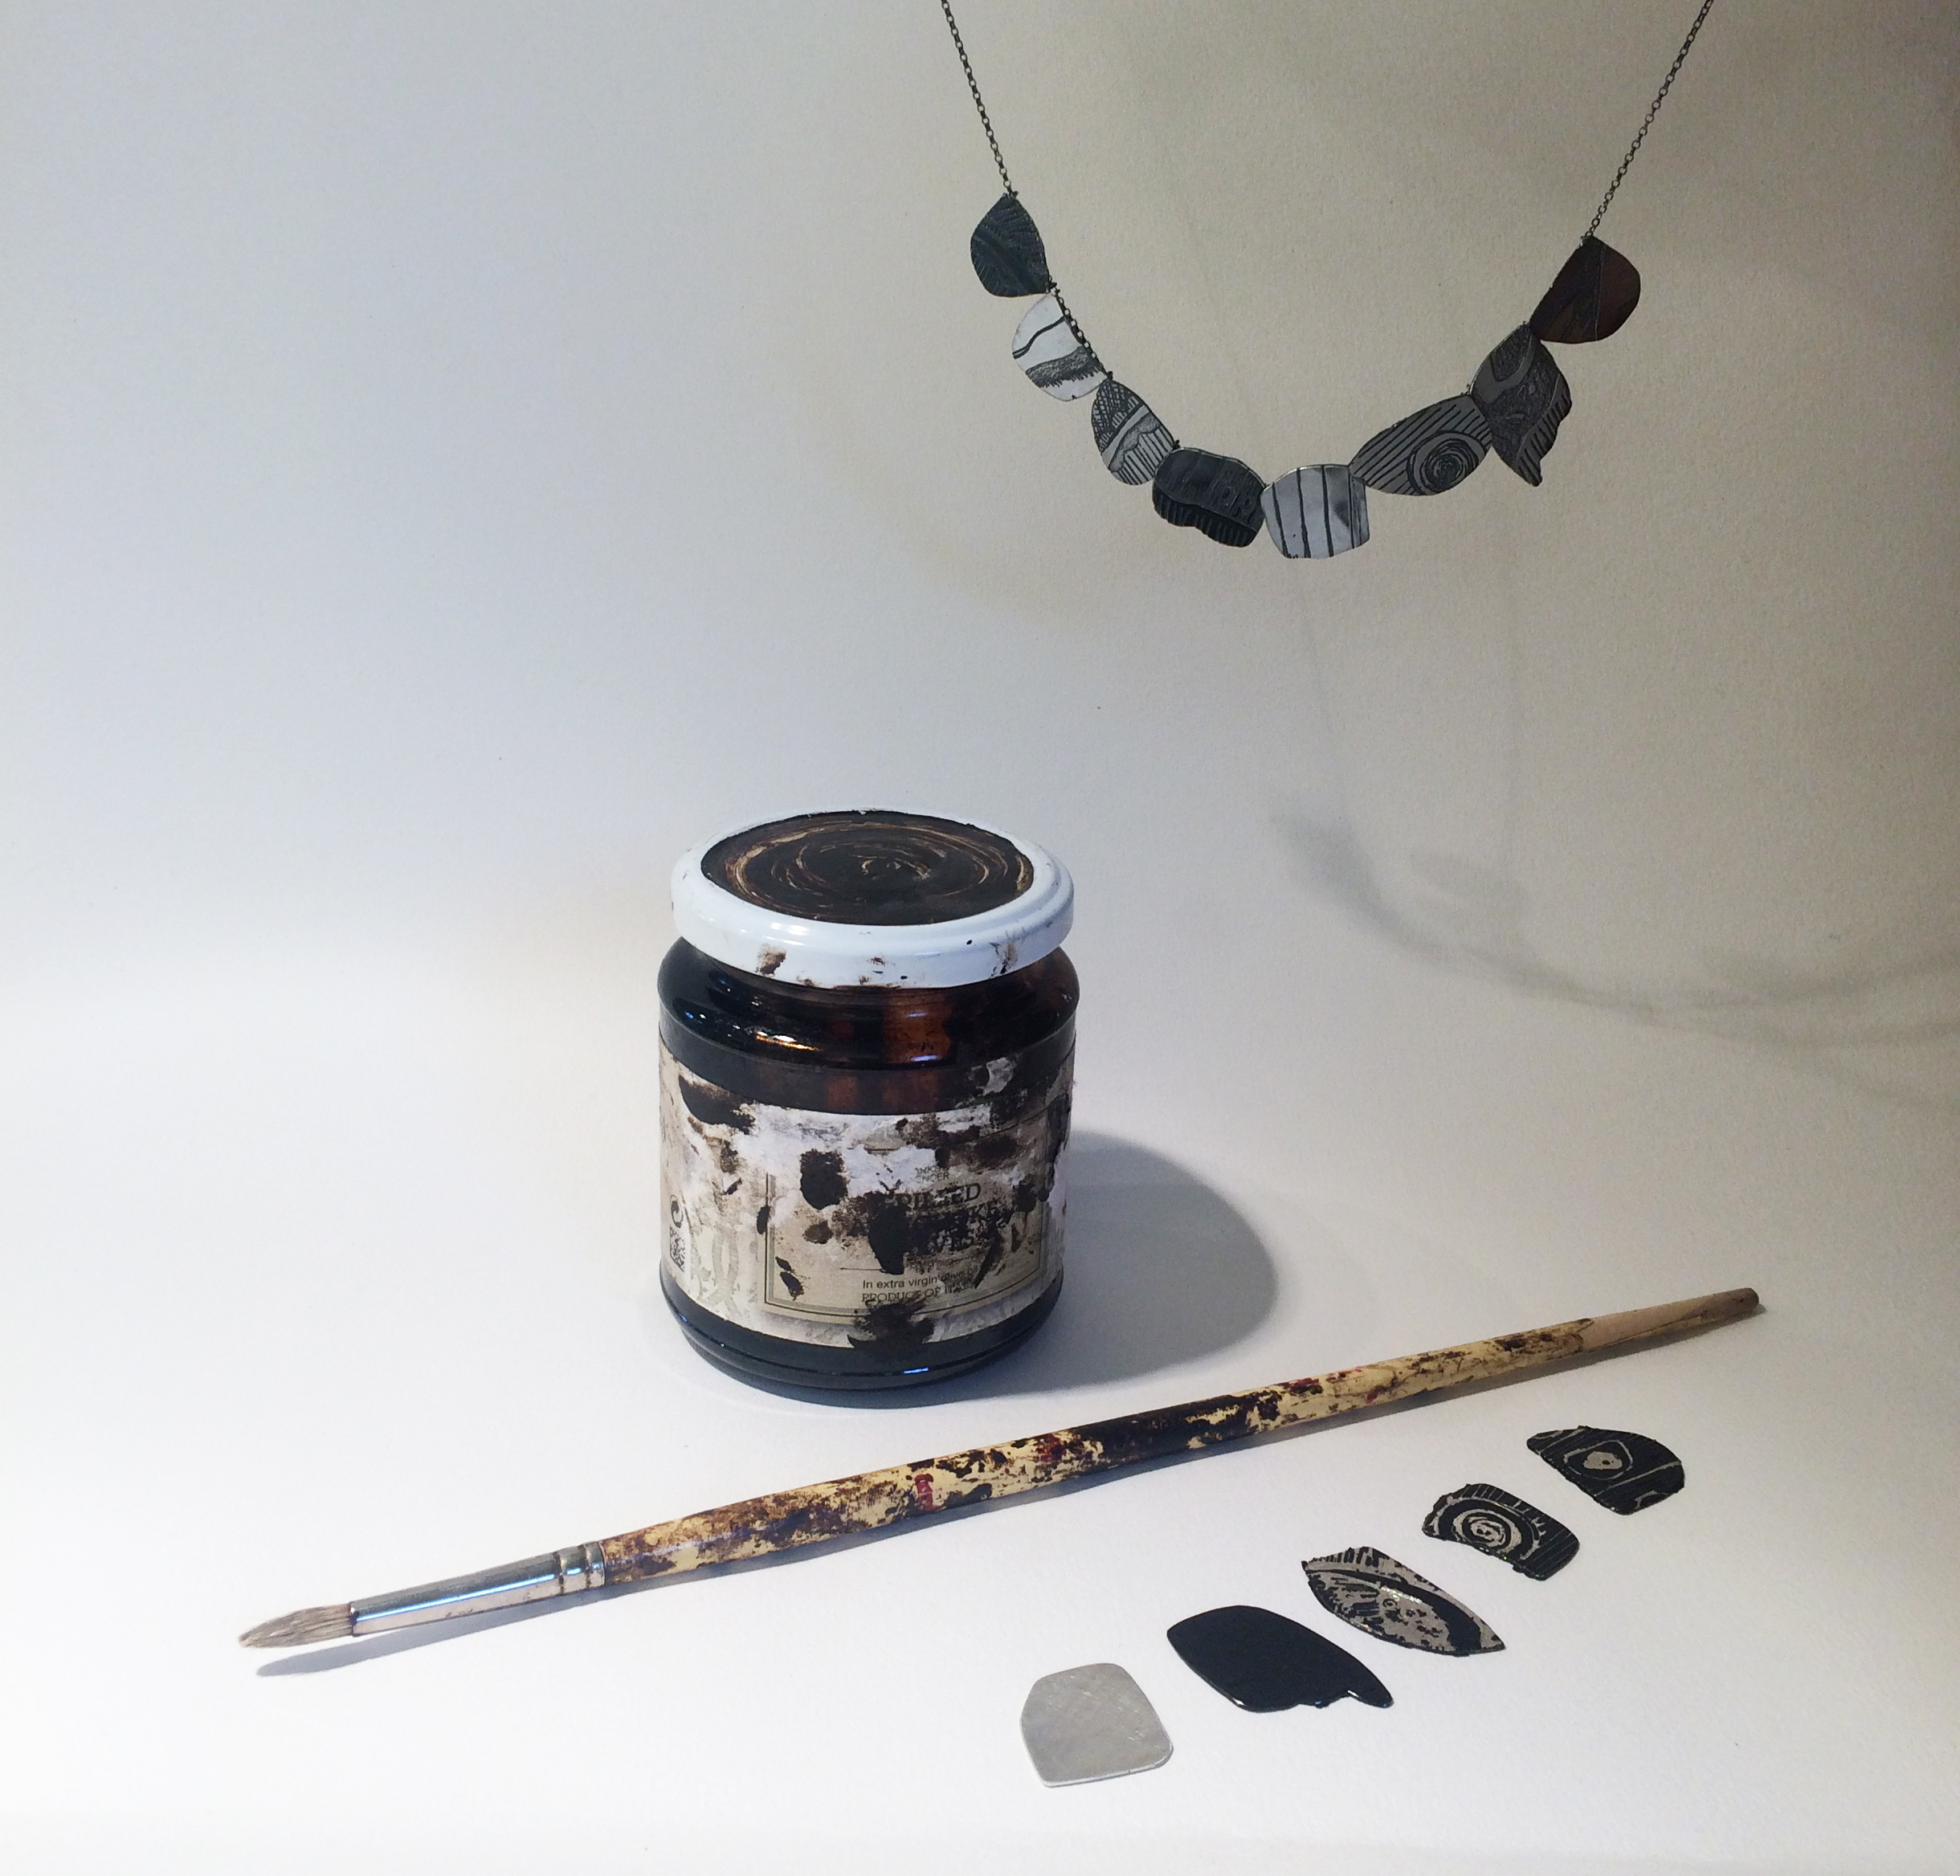 Eden Silver-Myer showing the steps in her etching process and finished necklace in oxidised silver.